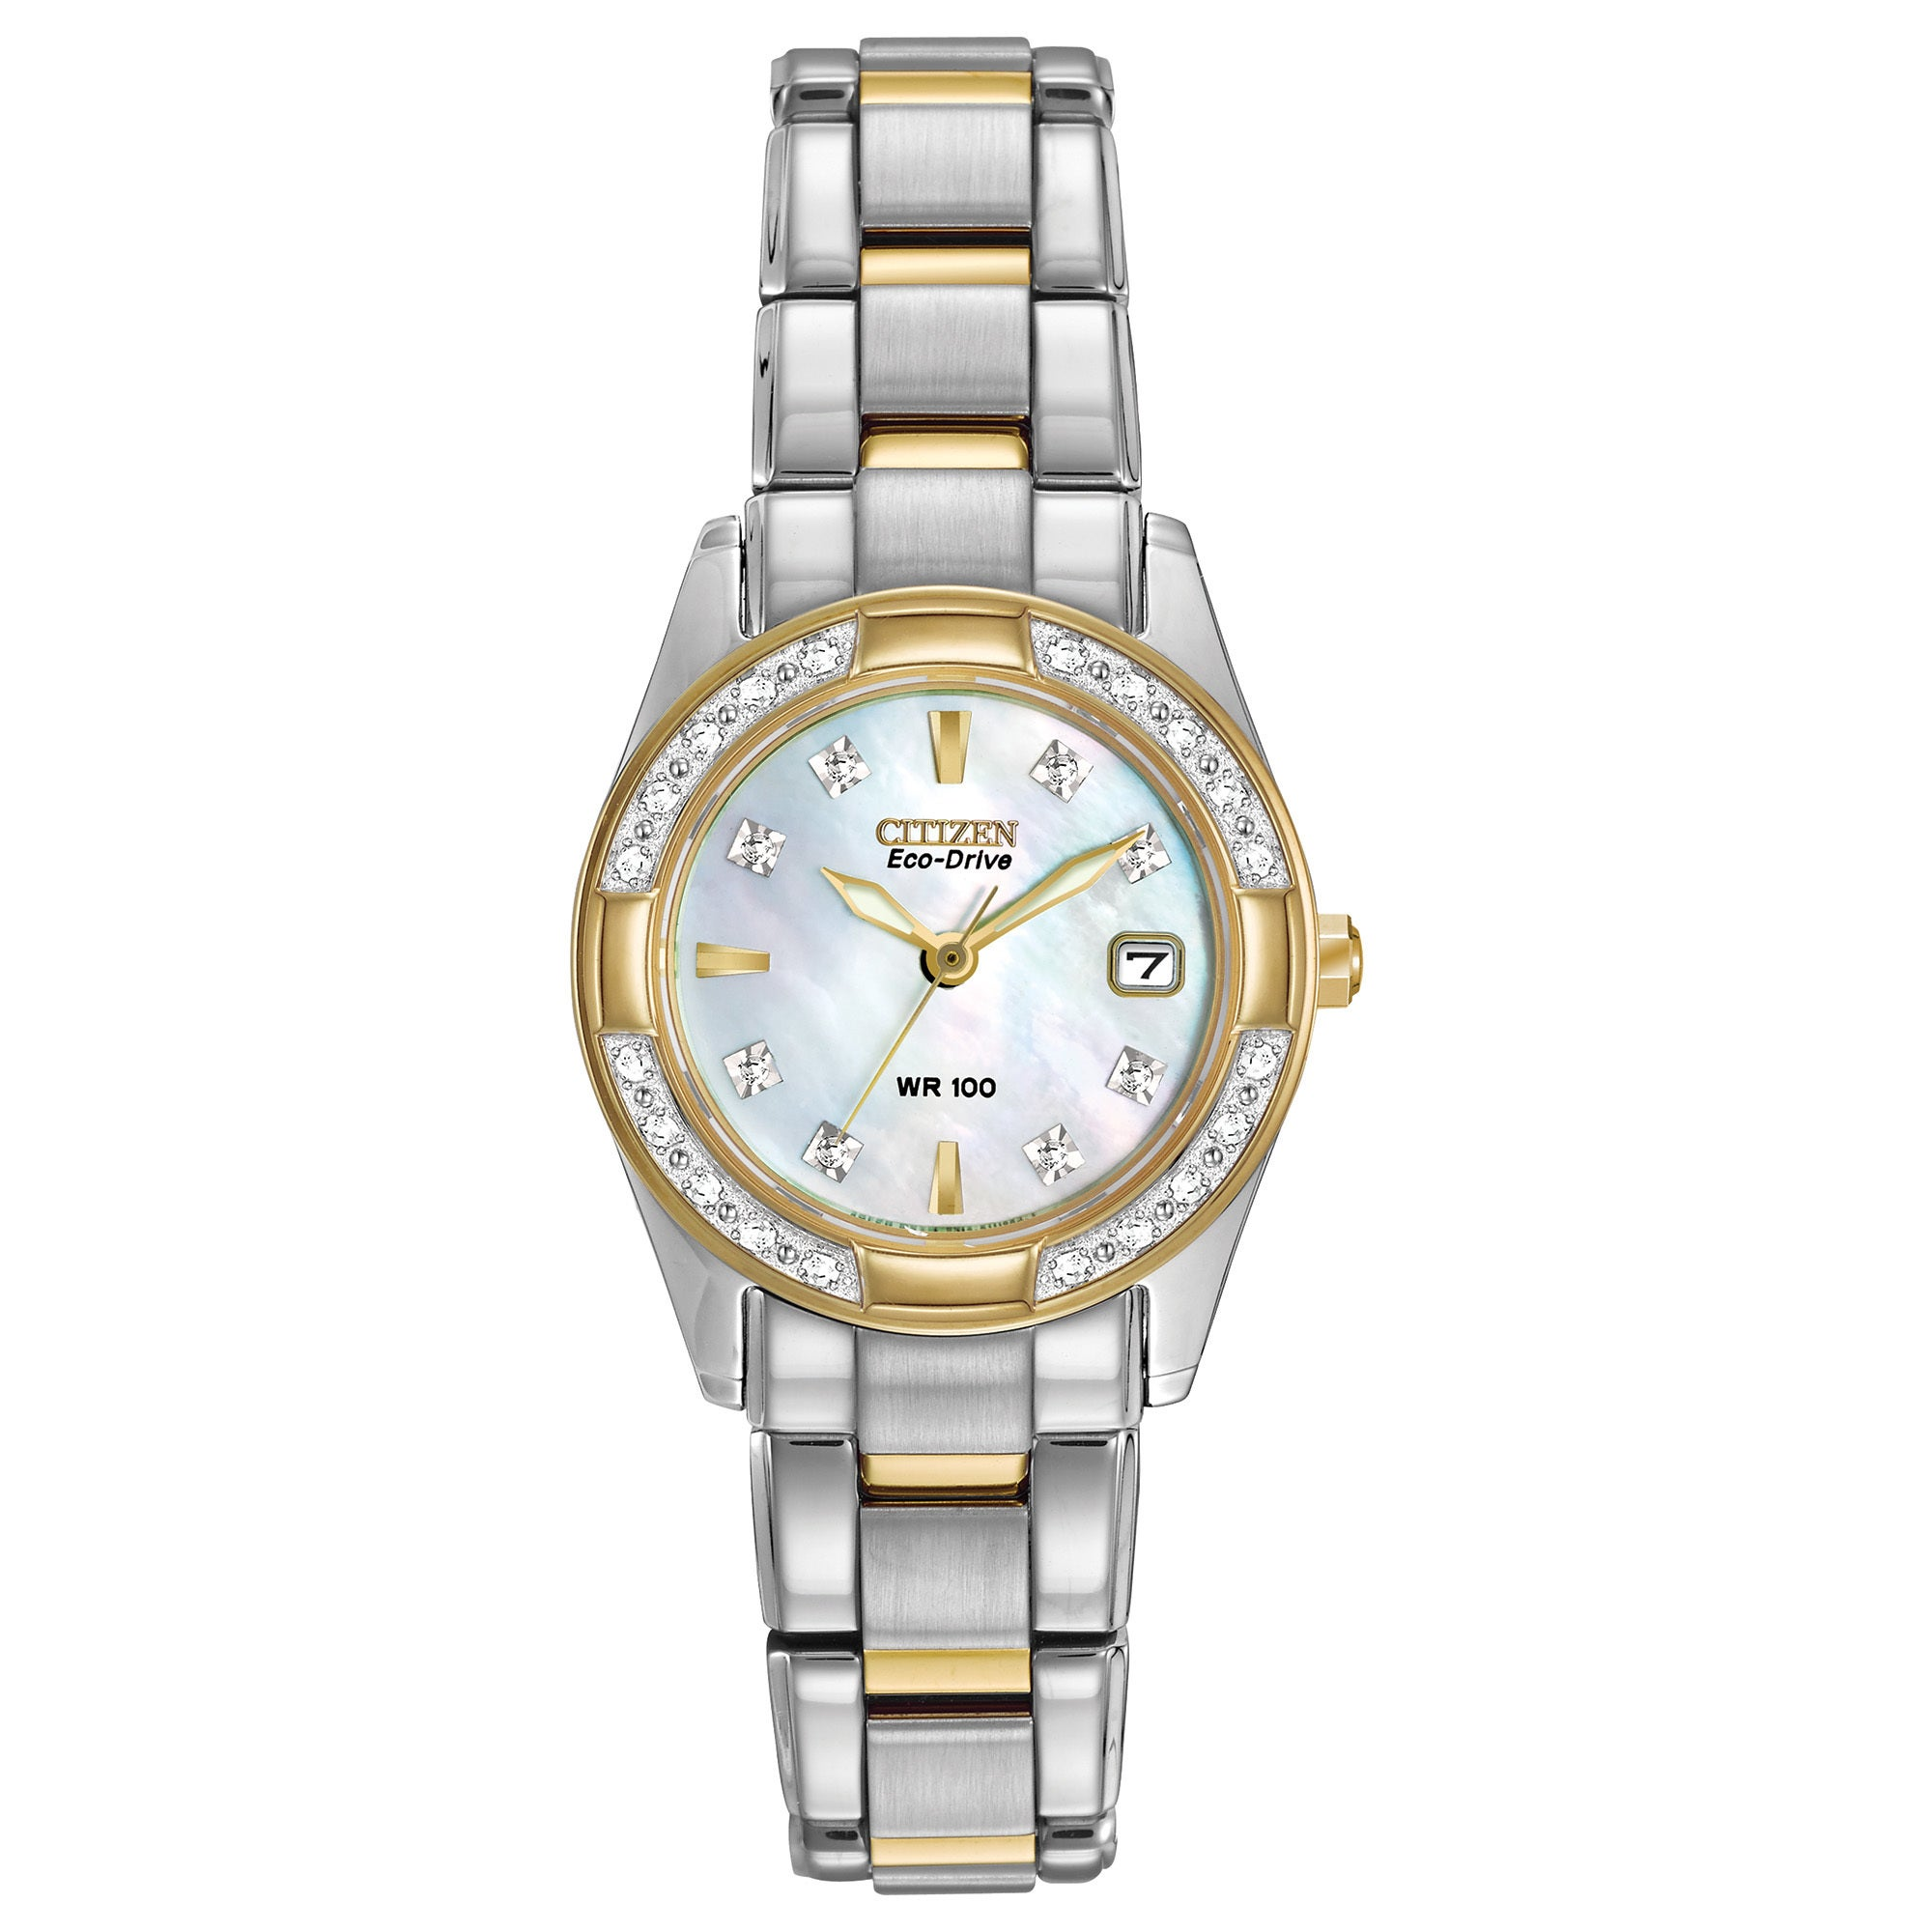 Cannondale Citizen Women's EW1824-57D Eco-Drive Regent Wa...